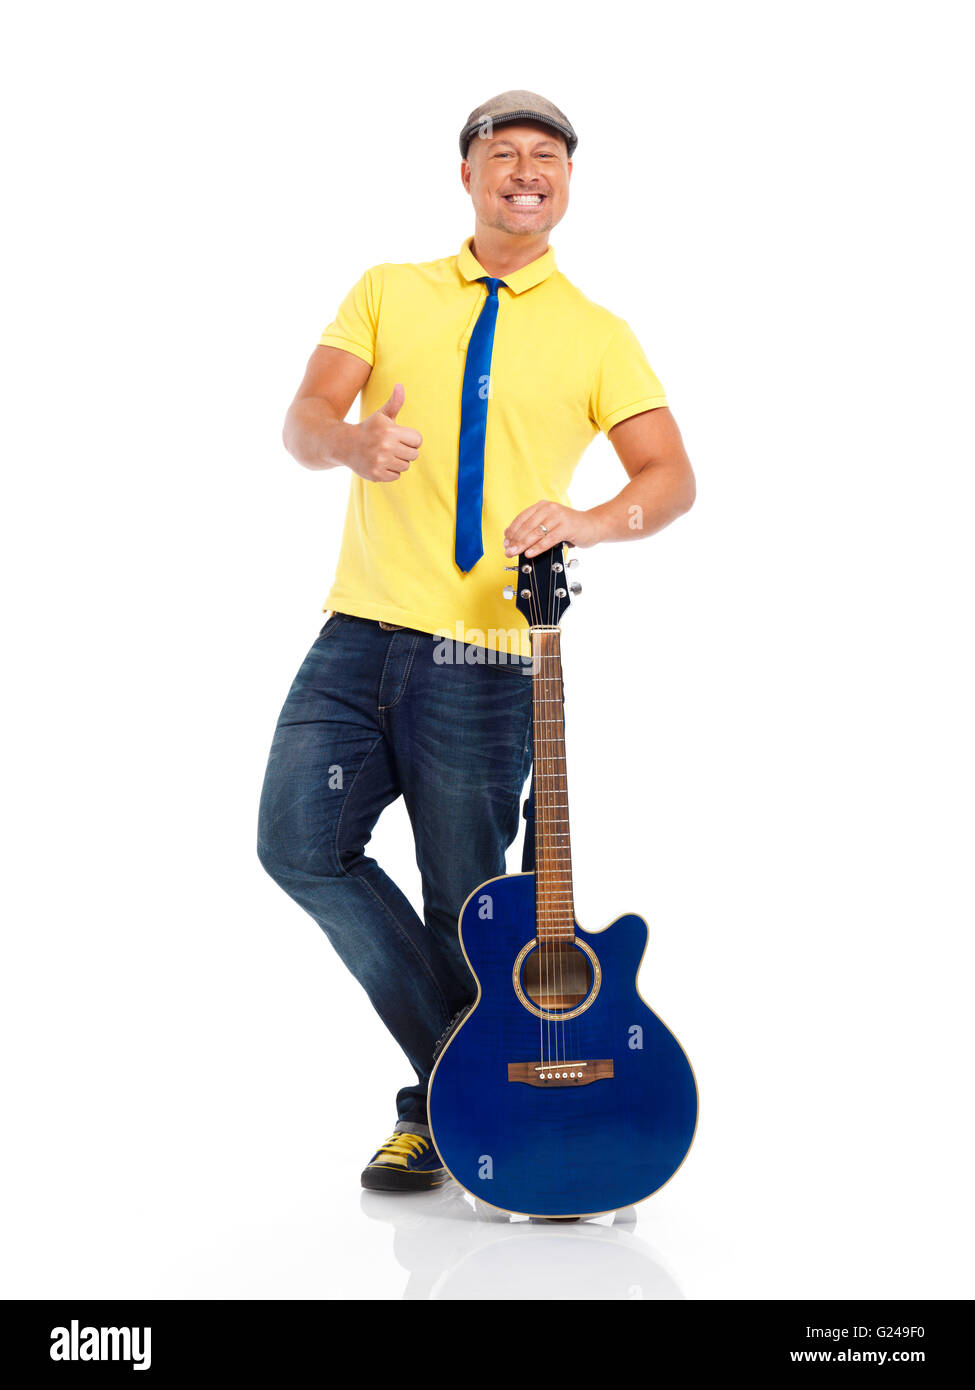 Smiling guitar player standing with an acoustic guitar - Stock Image